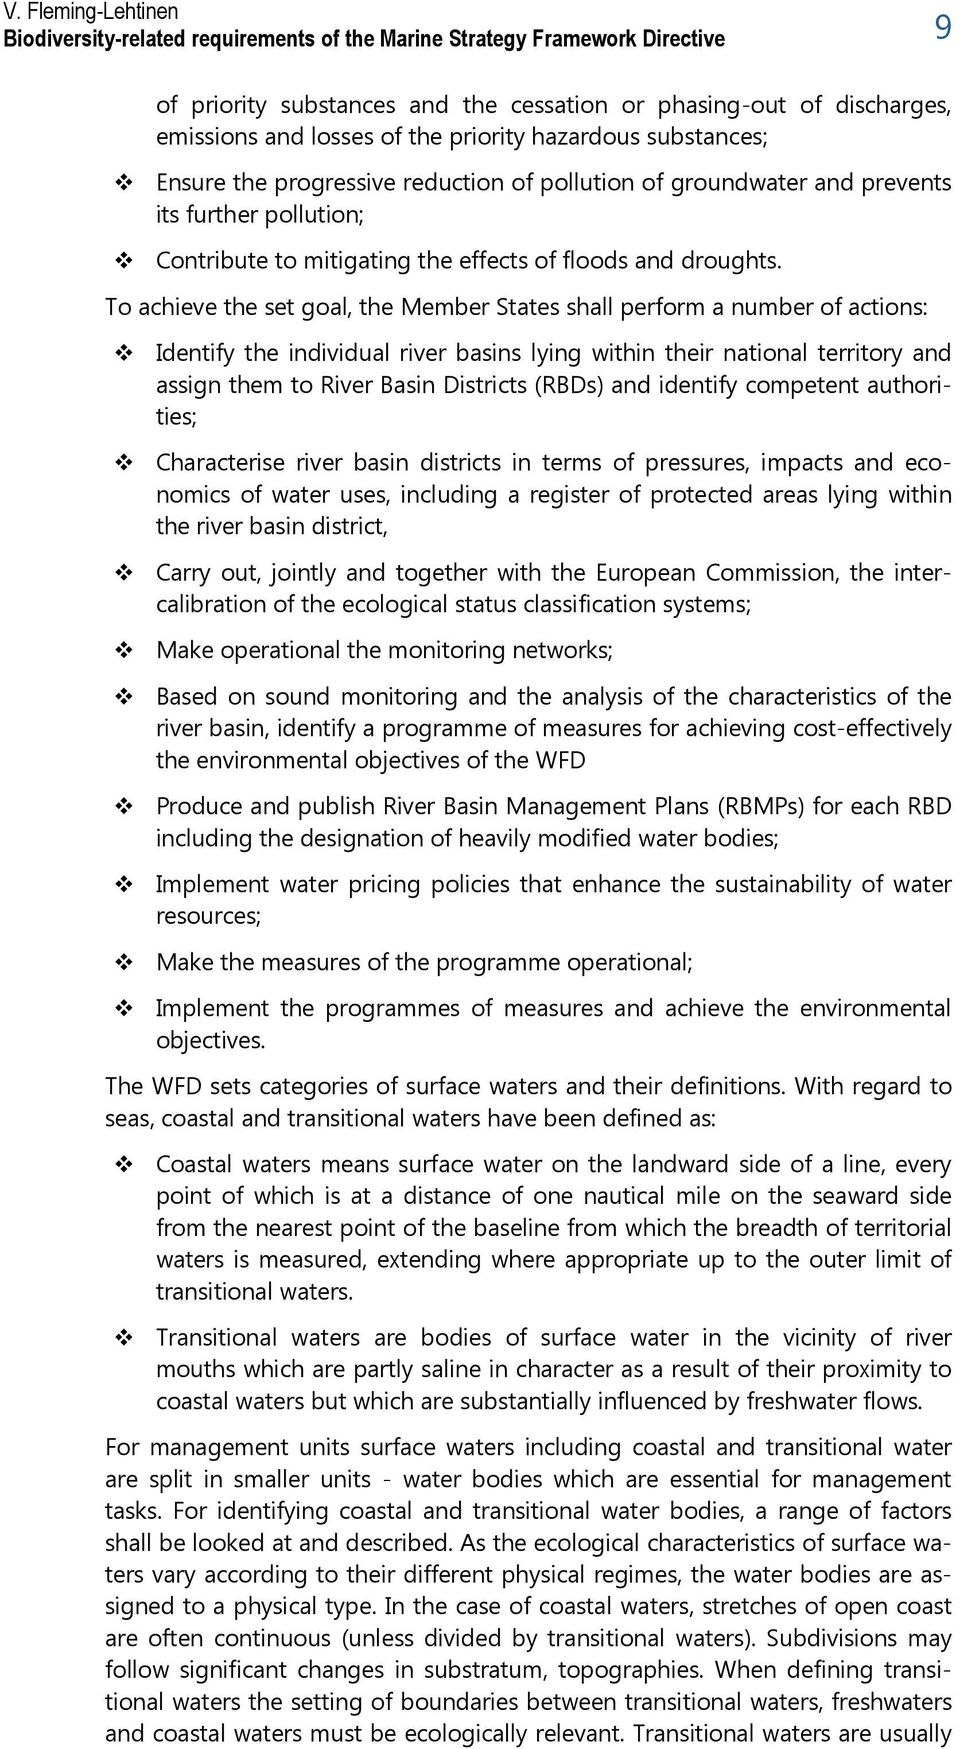 To achieve the set goal, the Member States shall perform a number of actions: Identify the individual river basins lying within their national territory and assign them to River Basin Districts